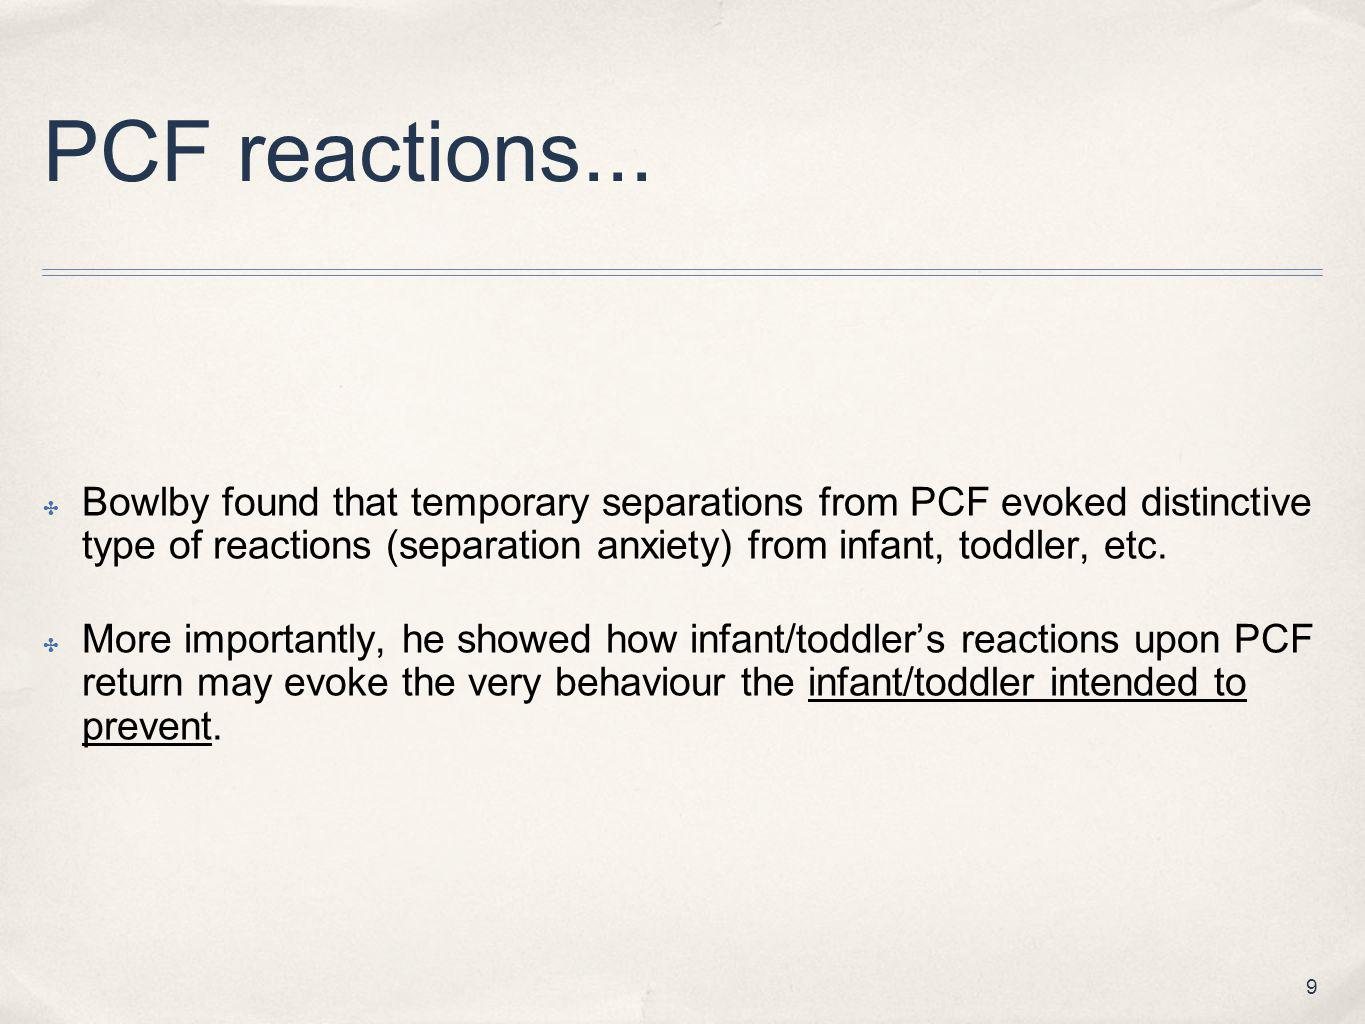 PCF reactions...